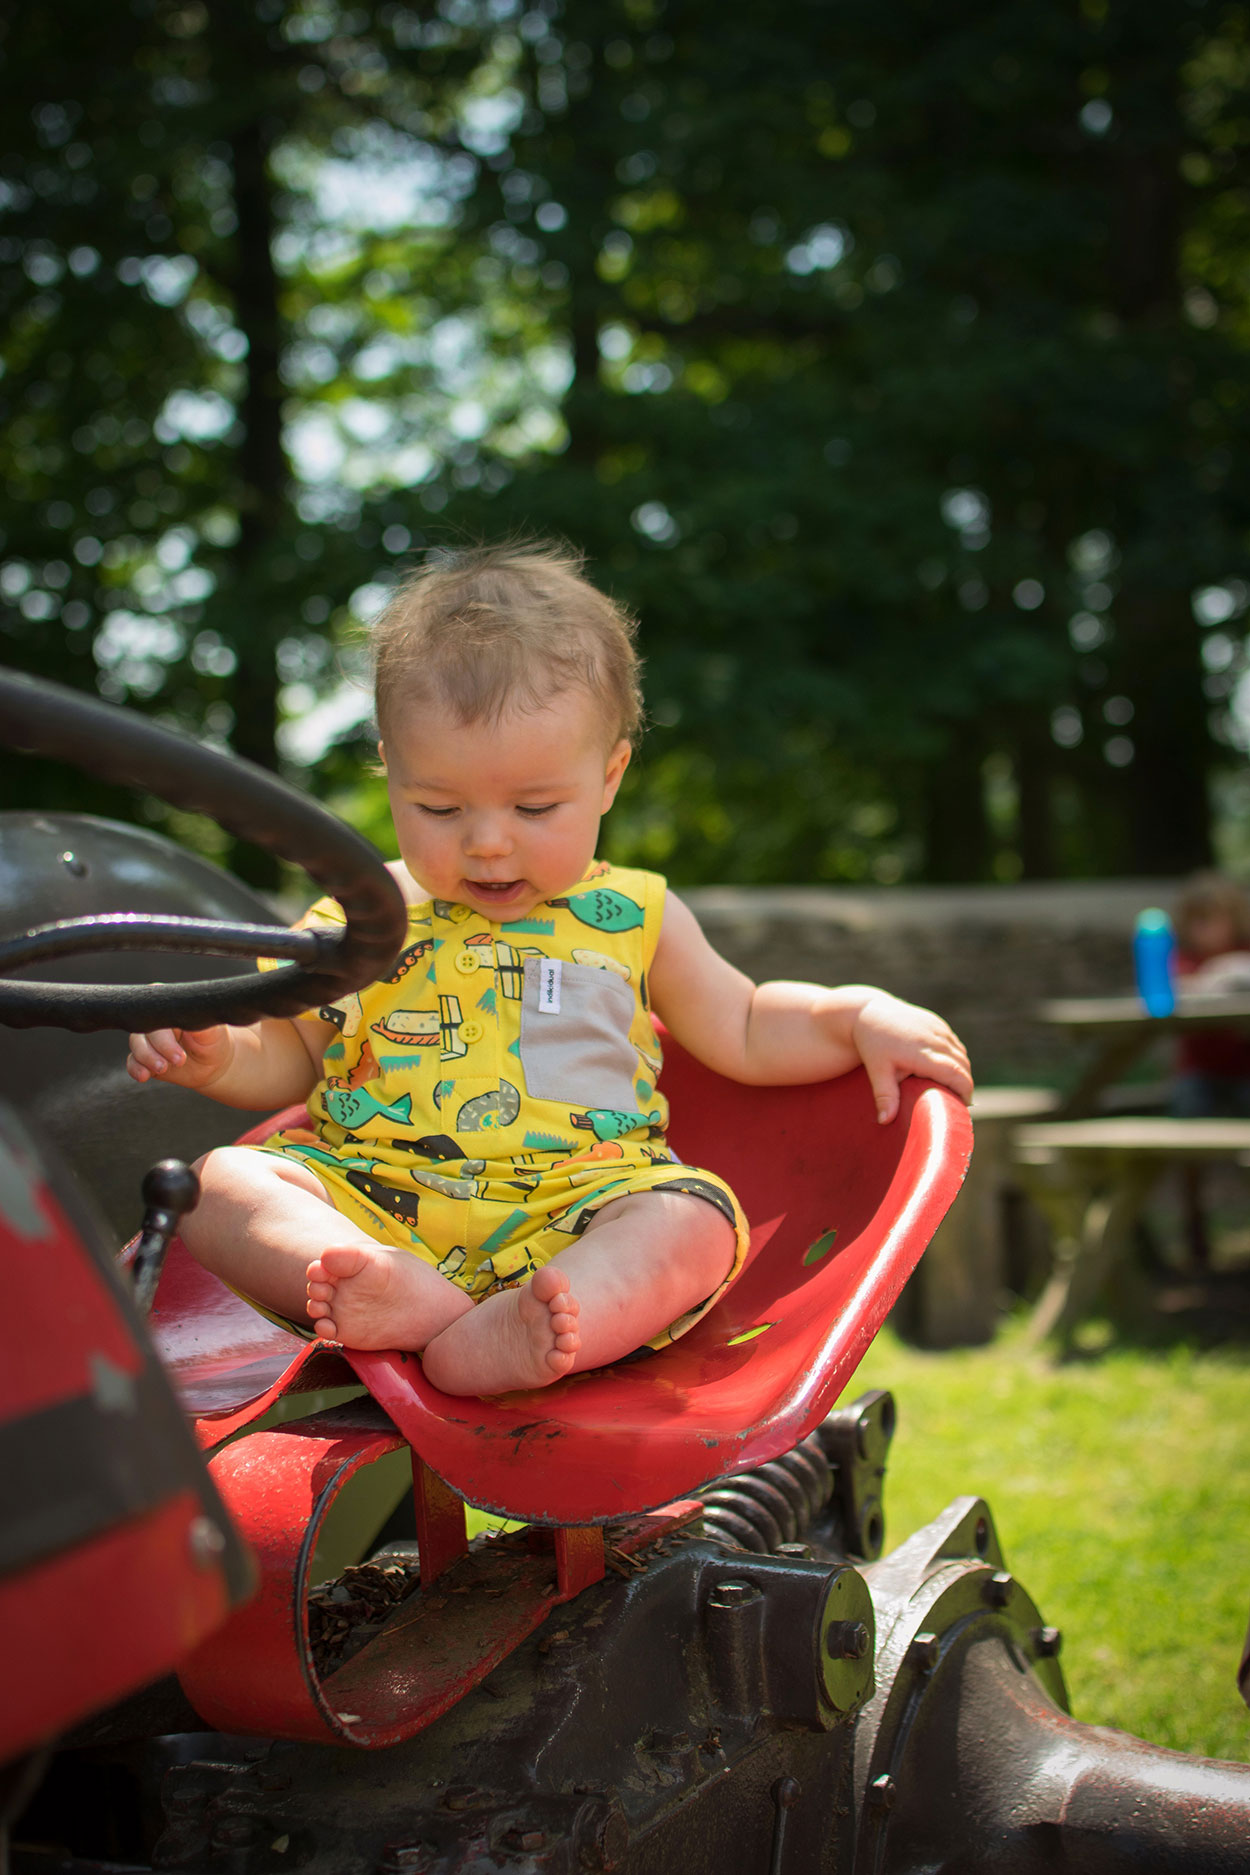 Baby wearing fun yellow chopsticks sushi playsuit from Alex and Alexa whilst sitting on a tractor at Dyrham Park, National Trust, nr. Bath